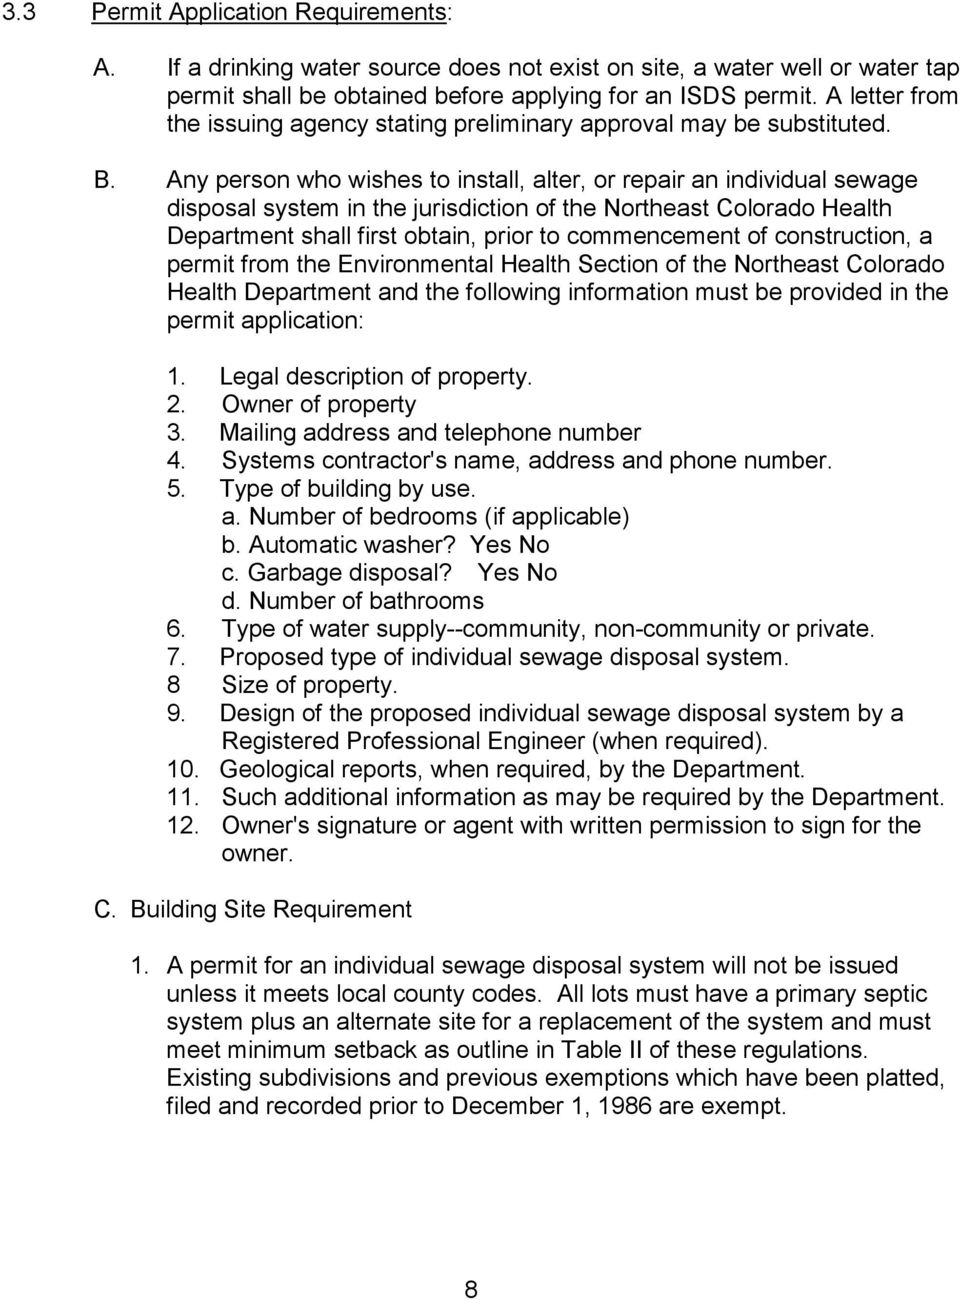 Any person who wishes to install, alter, or repair an individual sewage disposal system in the jurisdiction of the Northeast Colorado Health Department shall first obtain, prior to commencement of